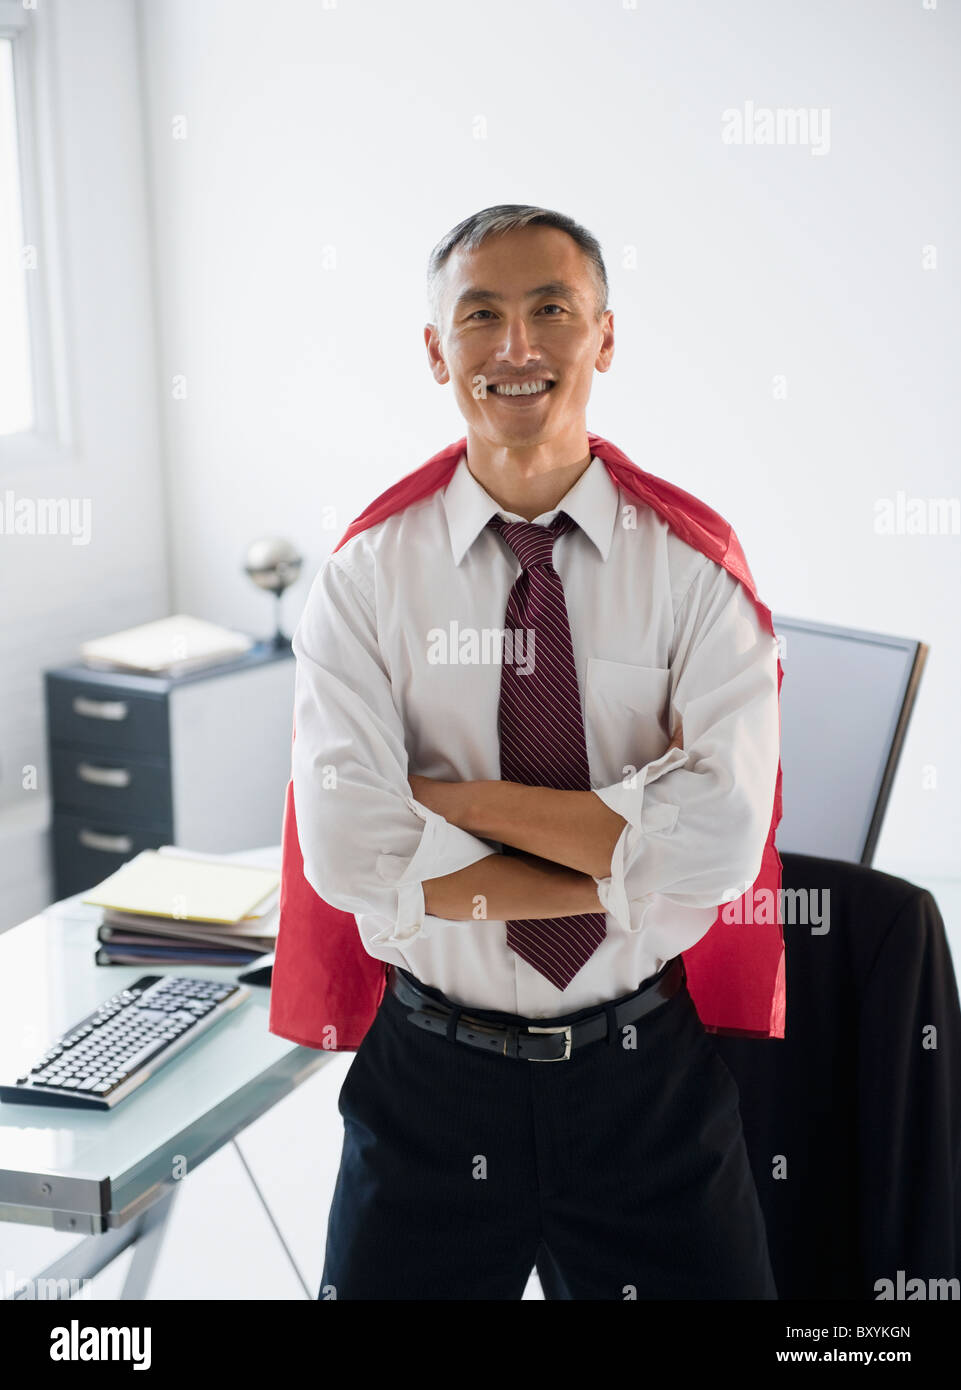 Portrait of smiling businessman wearing red cape - Stock Image